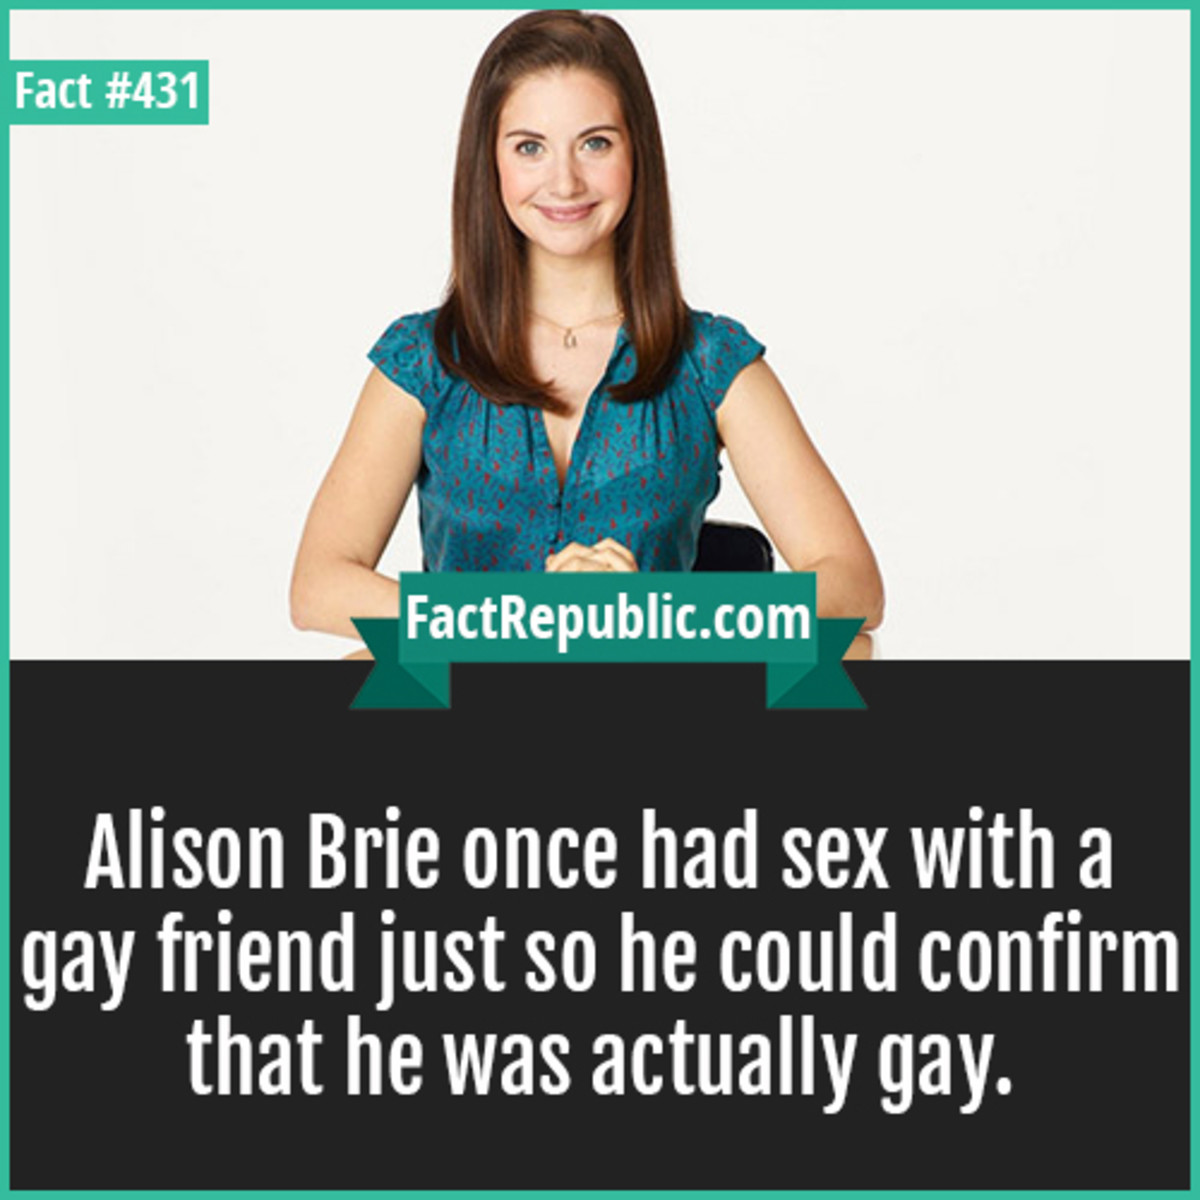 AMAZING FACTS .... source: http://www.factrepublic.com. cnm Alison Brie once had sex with a gay friend just so he could confirm that he was actually gay.. When come his turn Roy Sullivan rolled a 1 for Luck and random encounter .